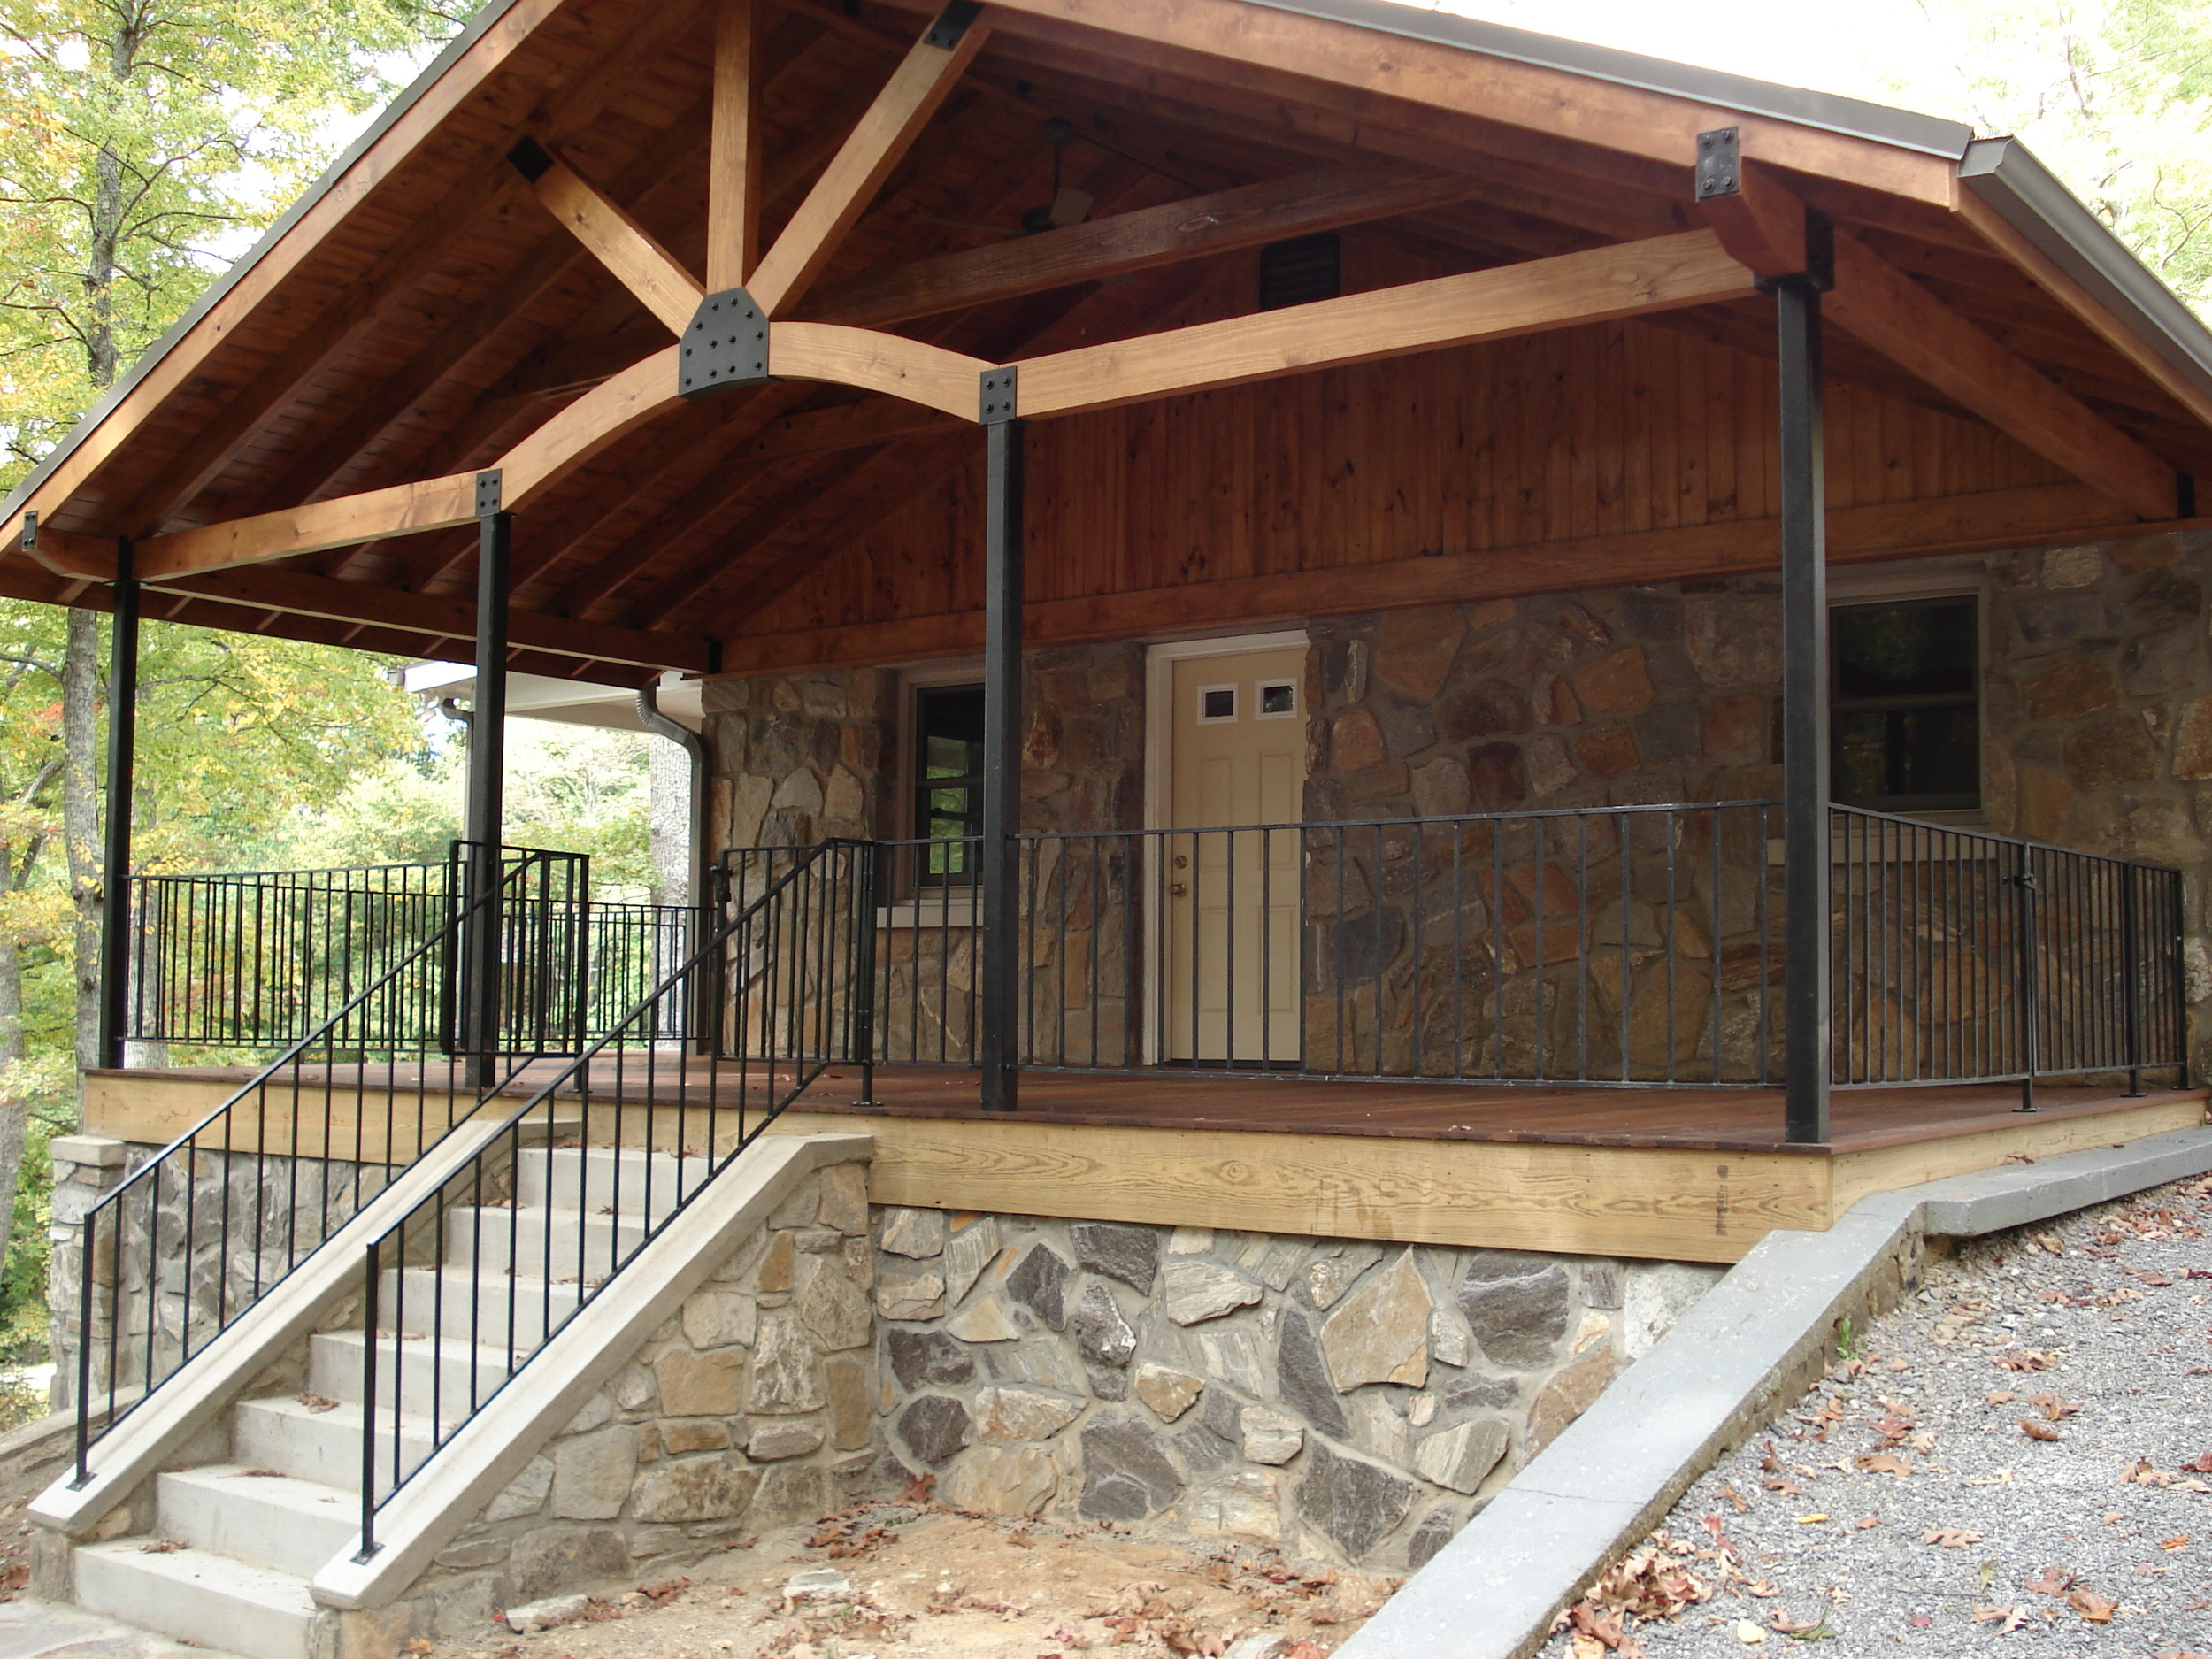 Sofa Rock Residence, Covered front porch with tongue and groove ipe flooring and custom metalwork on railings and supports for for roof.